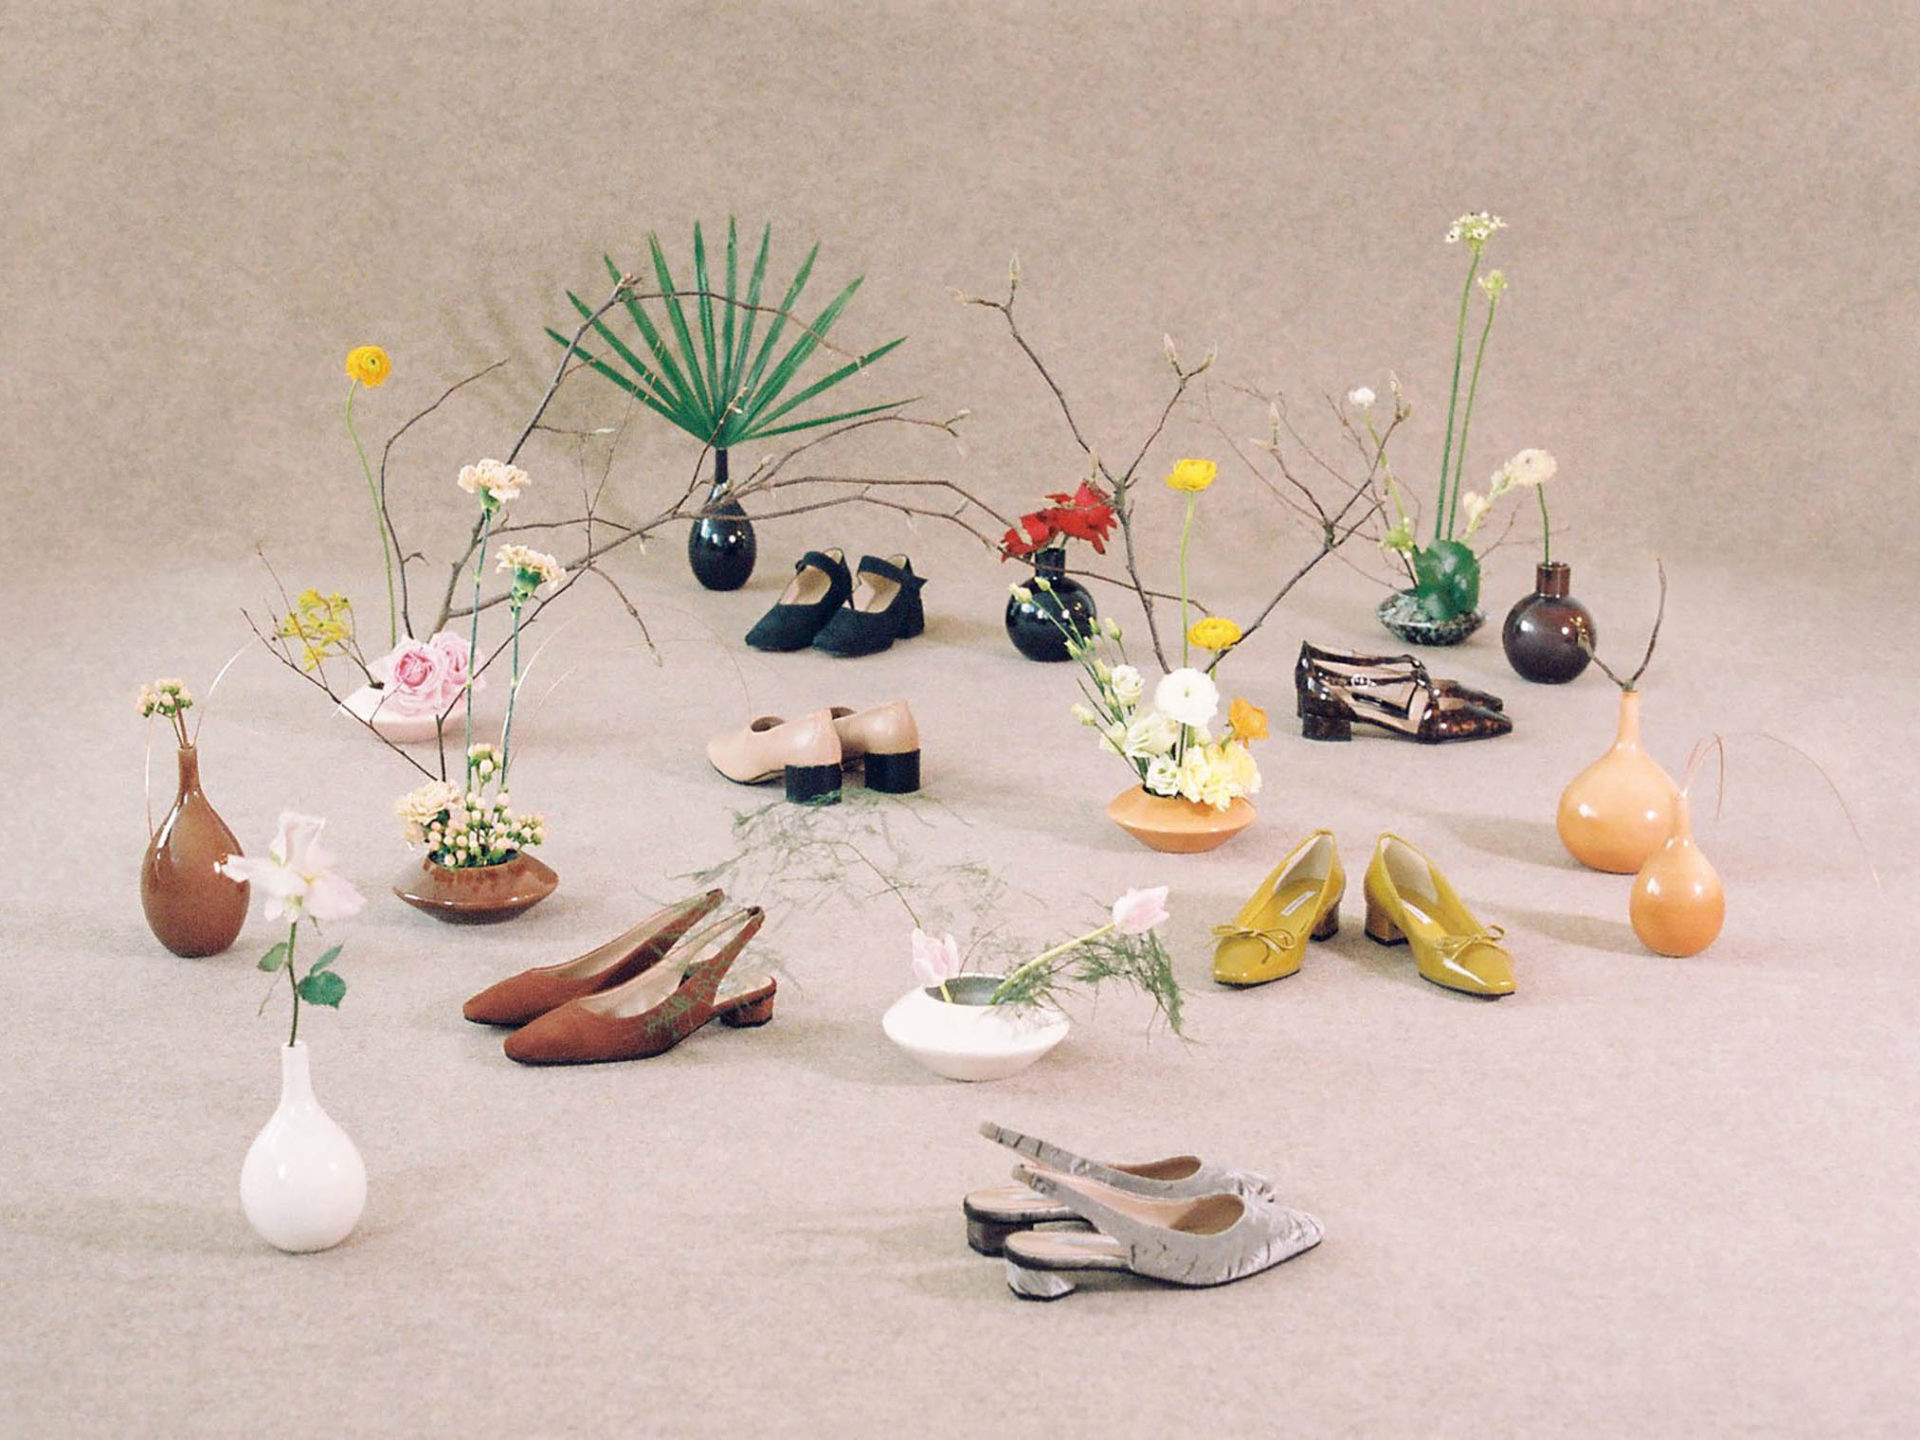 Res: 1920x1440, ikebana art and ceramics by Matagalán photography by Julien Pounchou